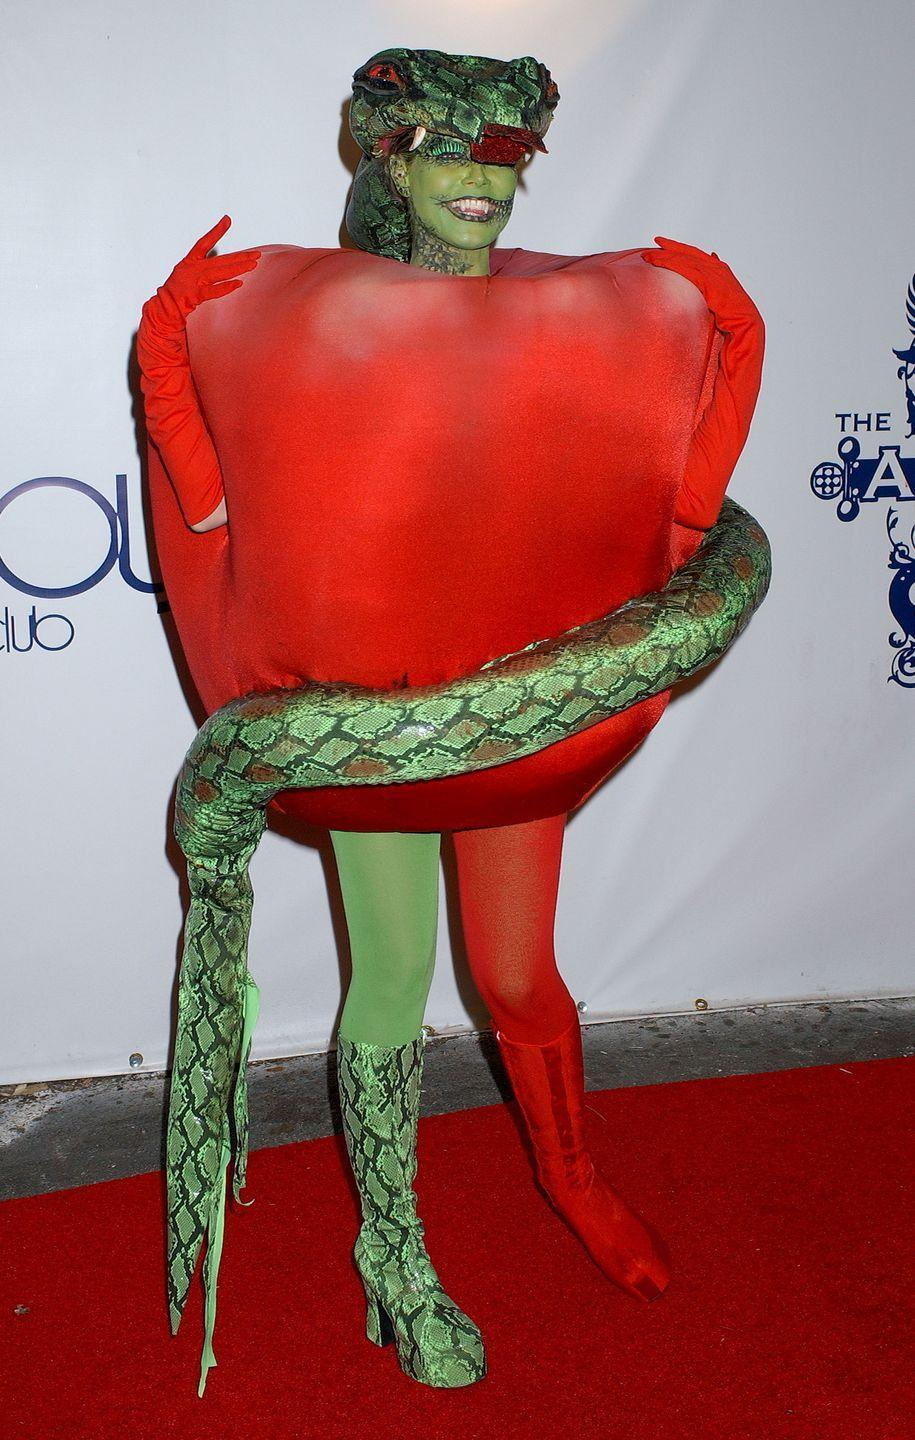 <p>Heidi concealed her pregnancy in 2006 by wearing giant apple costume with a snake wrapped around it. </p><p>We wonder what else she hid in there. </p>